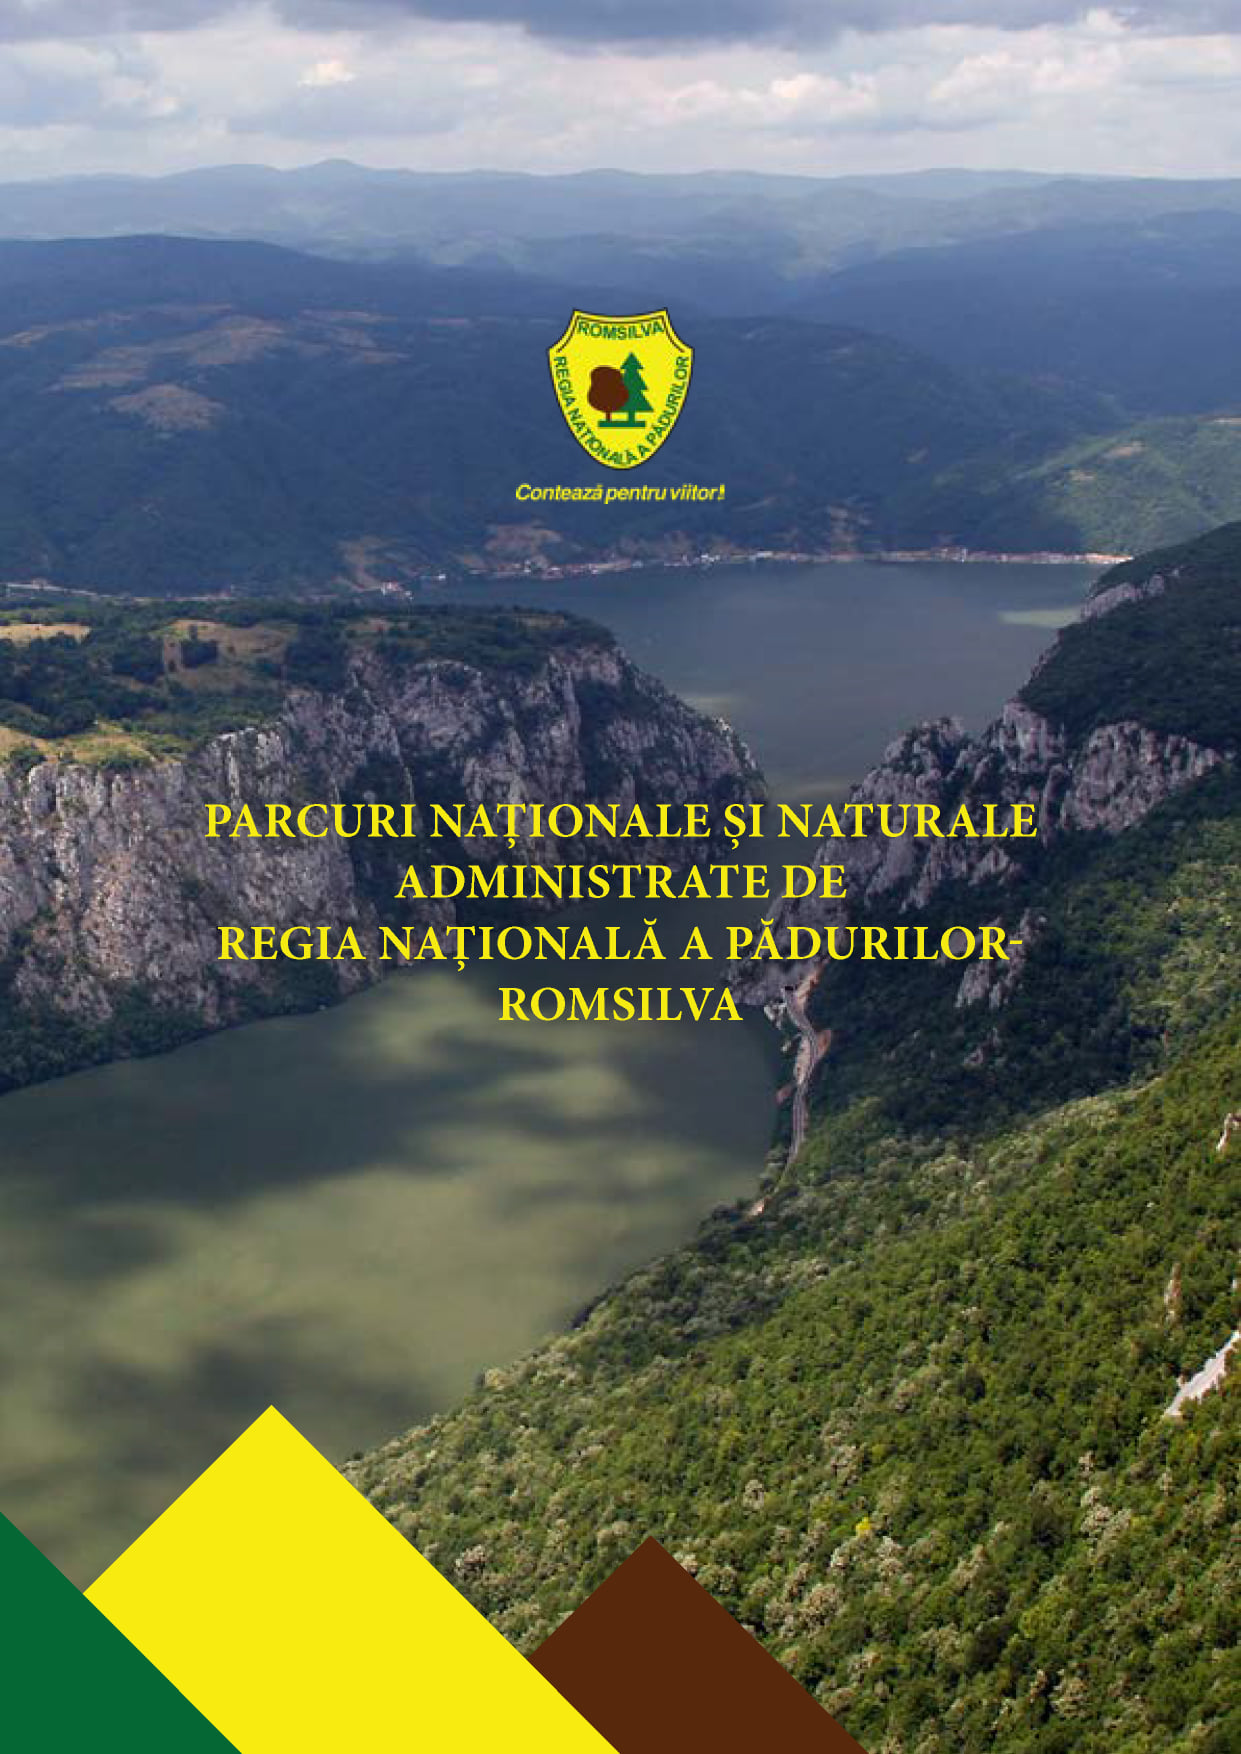 parcuri nationale naturale administrate de RNP